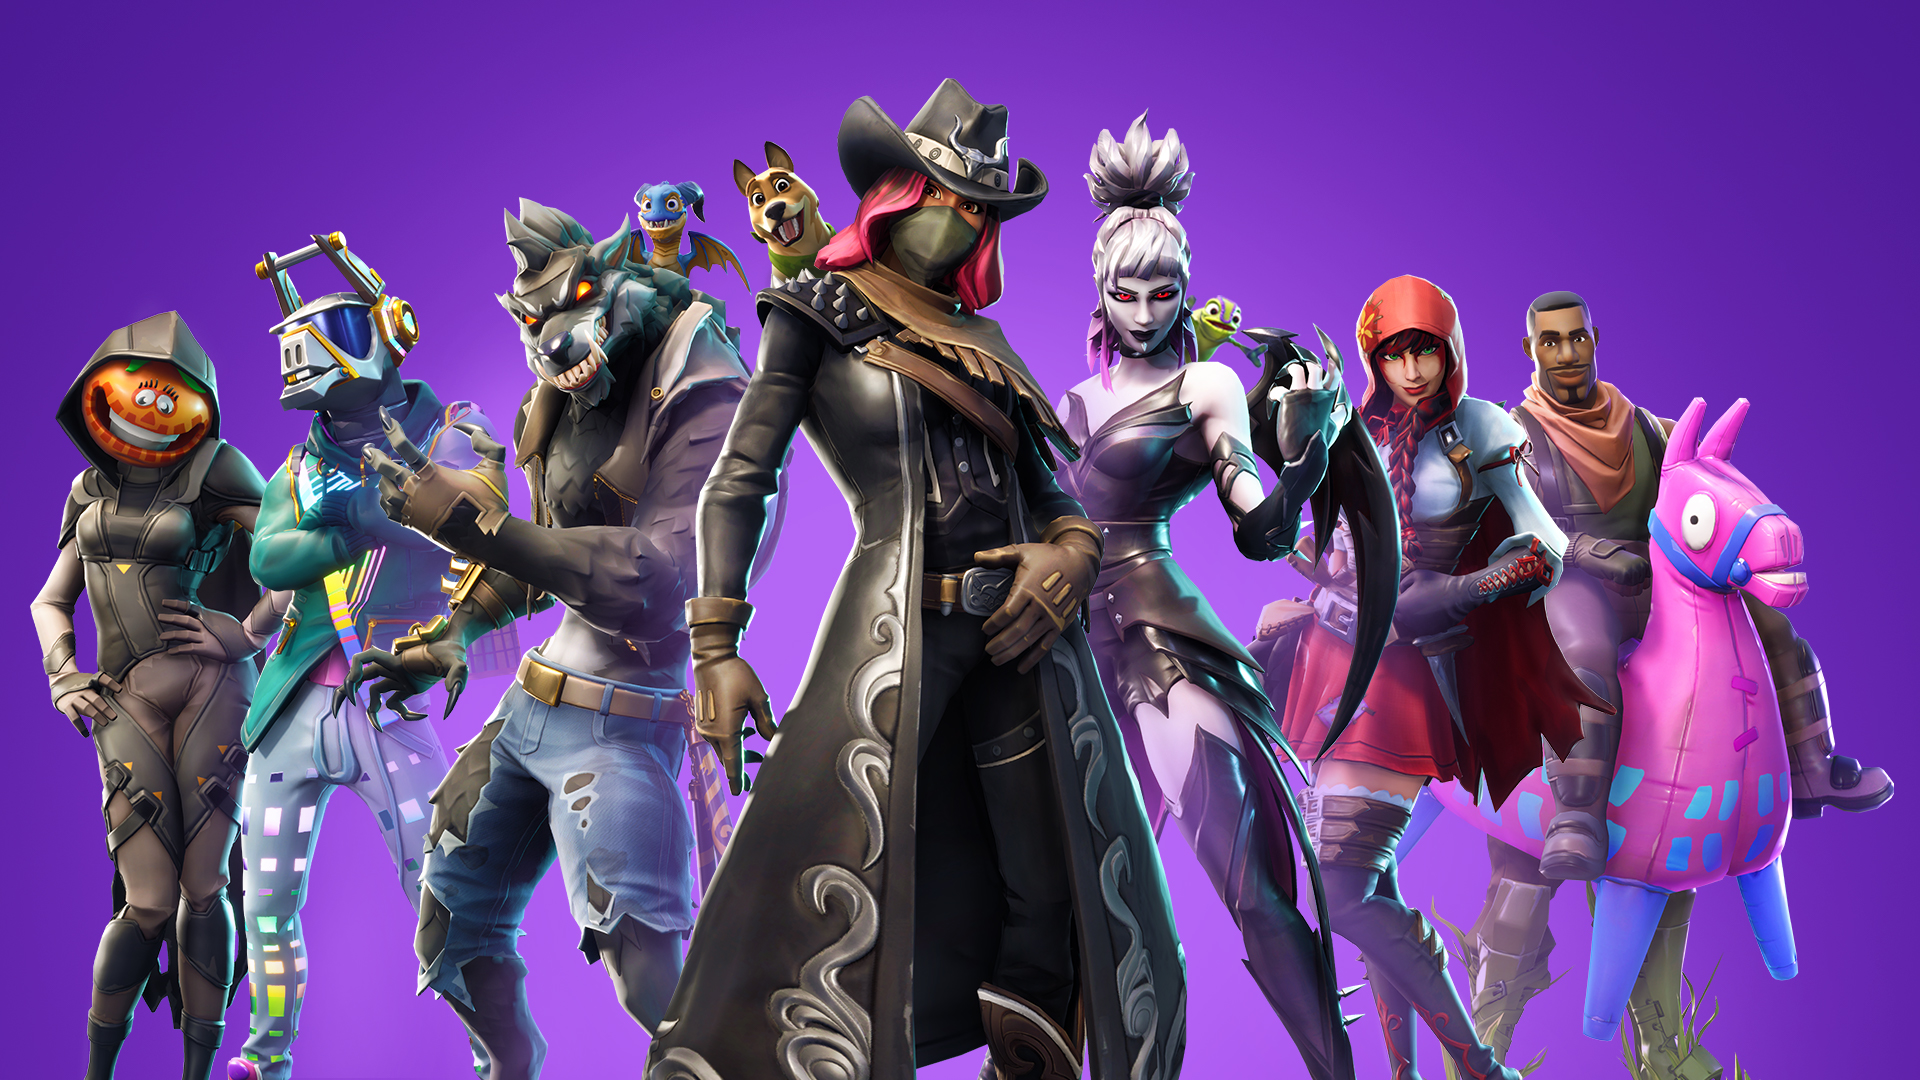 fortnite season 6 biggest changes shadow stones music packs pets and more gamesradar - what time is fortnite event today uk